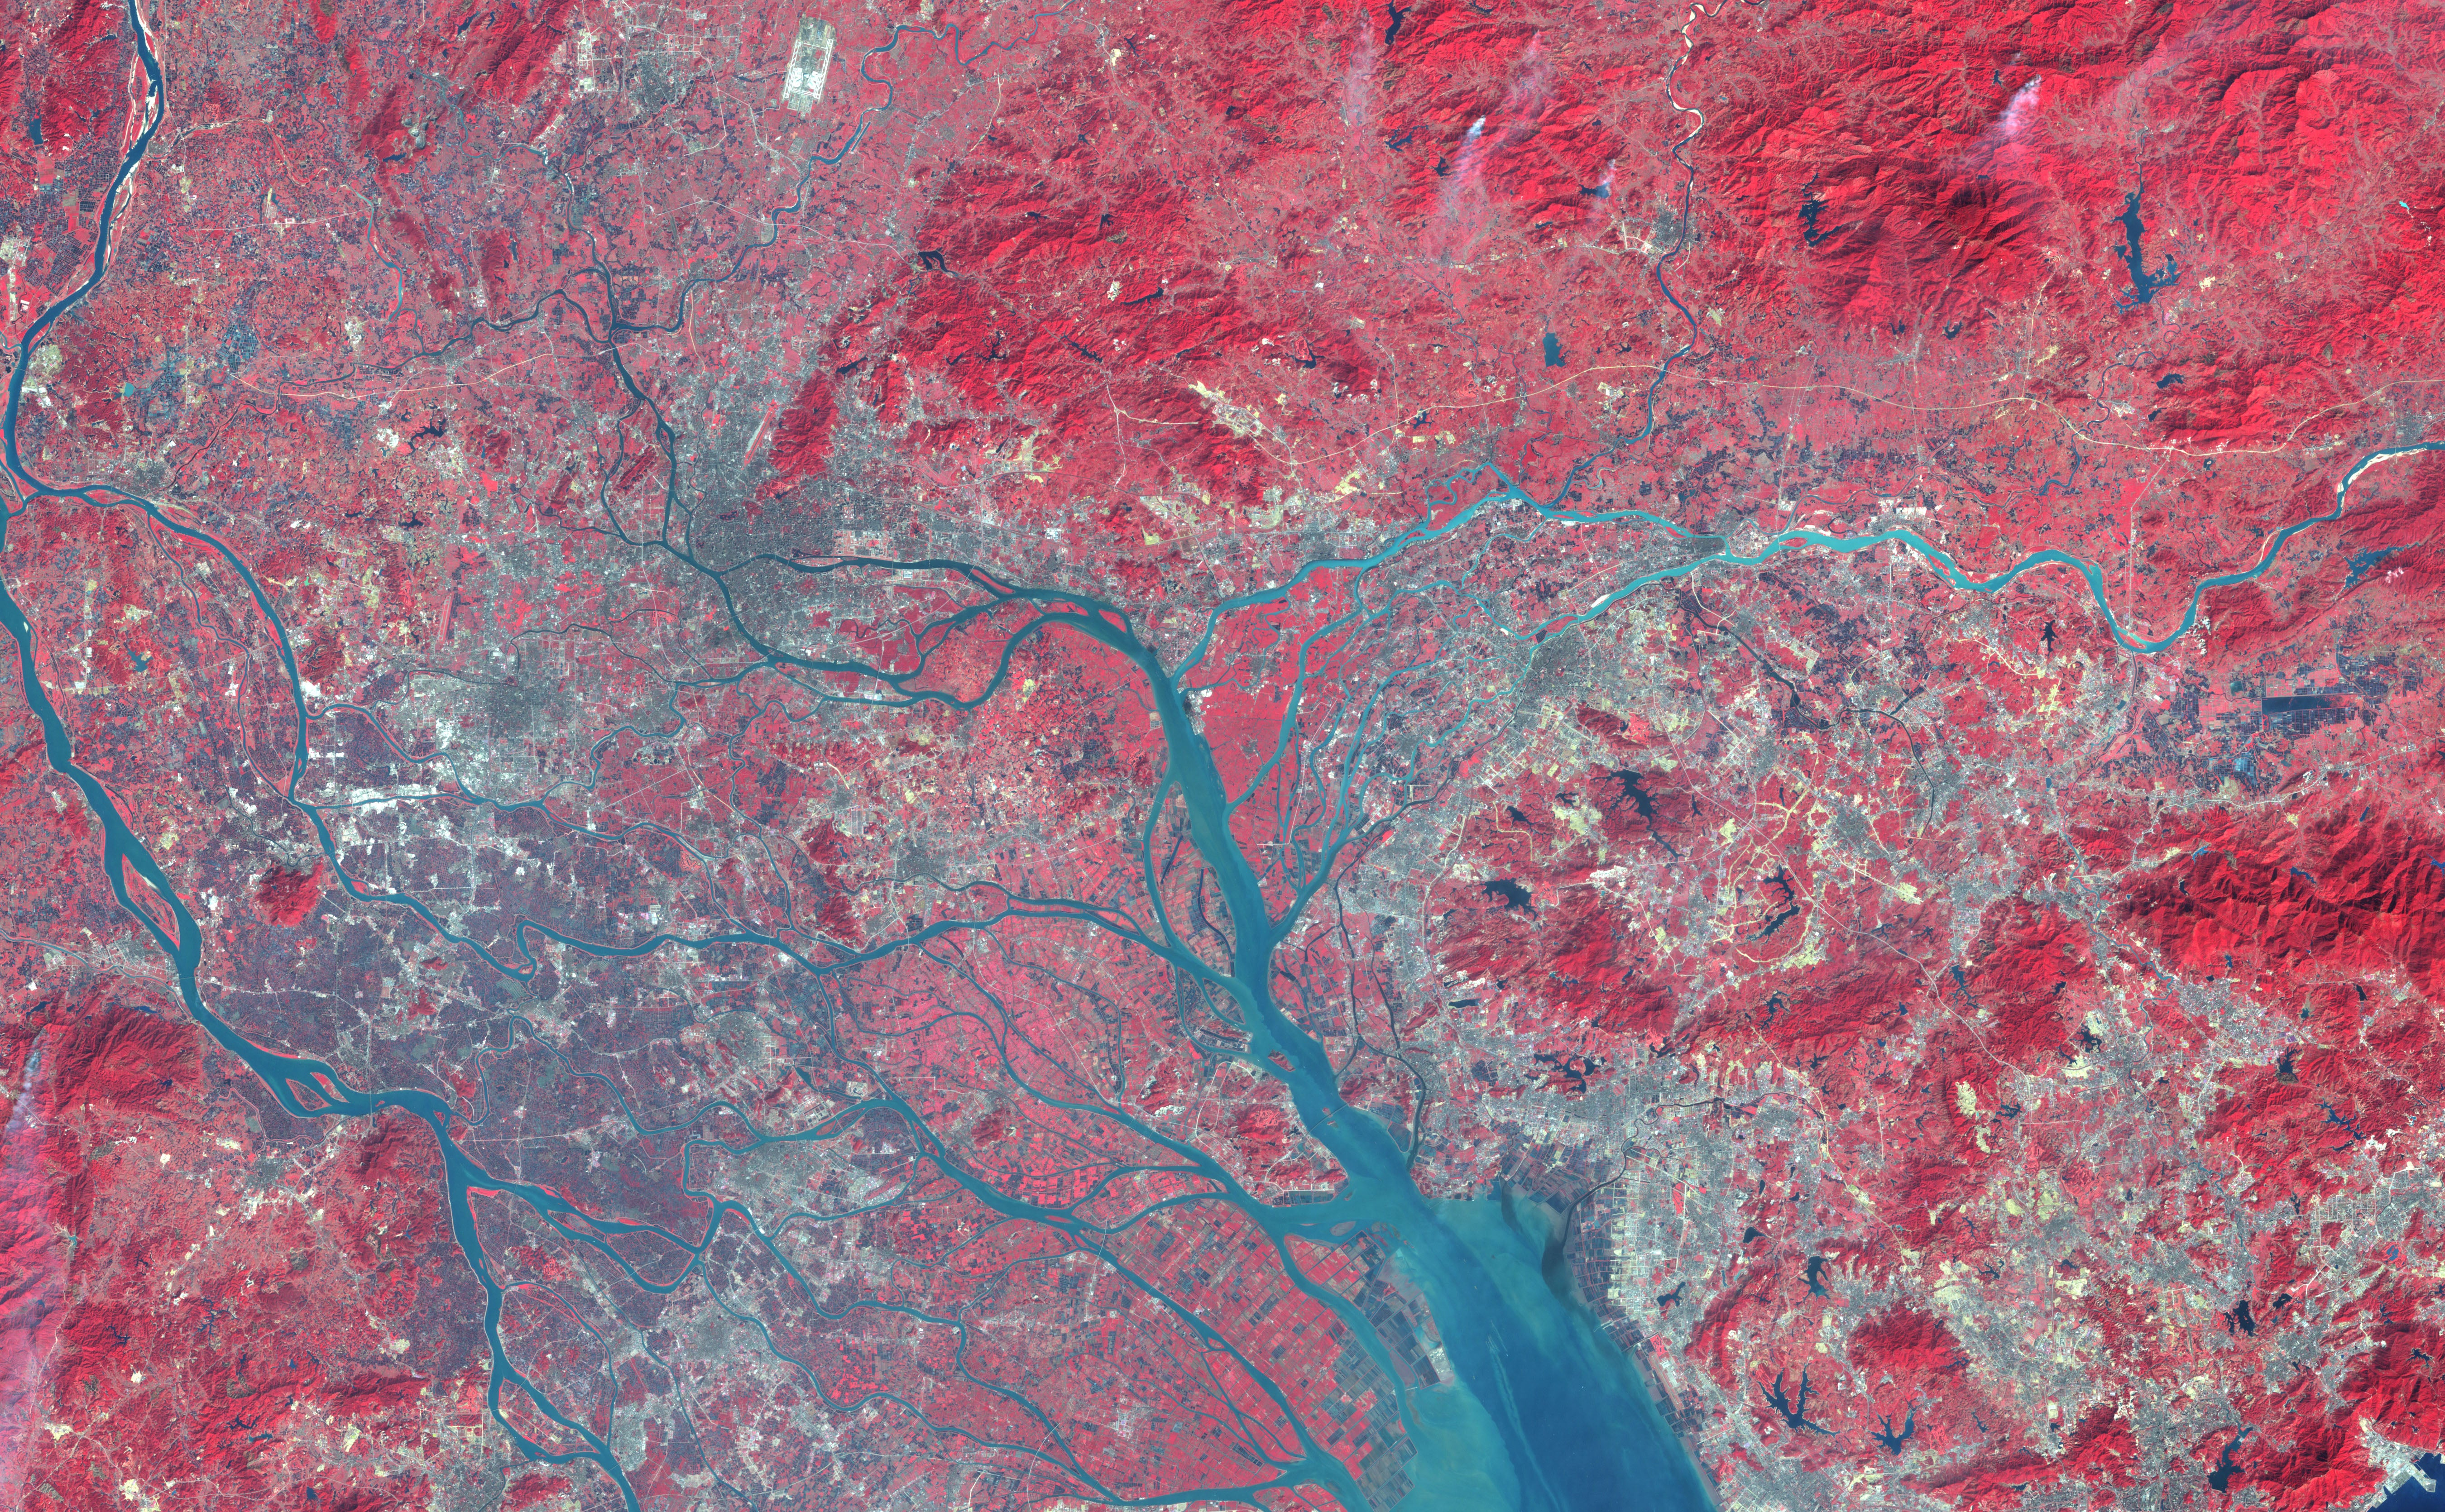 Megacities Are Growing So Fast We Need Satellites To Study Them